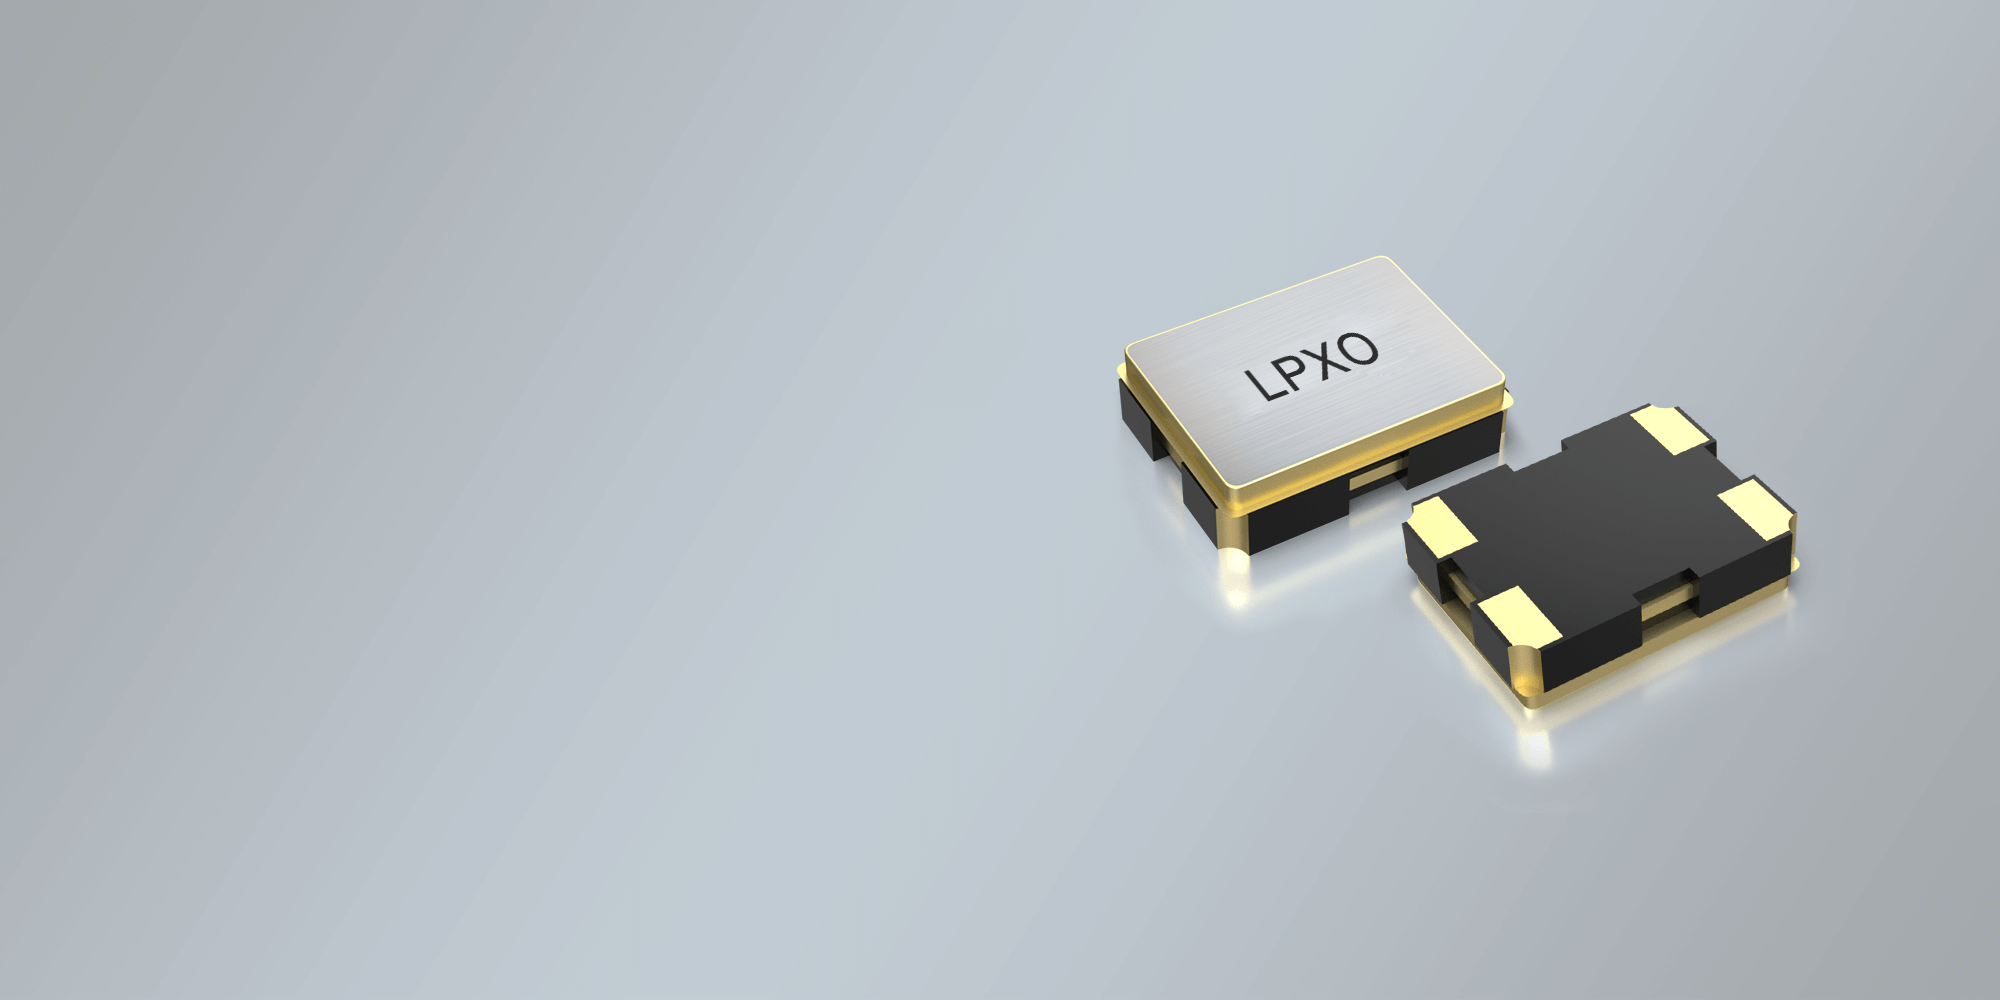 SMD LOW POWER 16.0 - 60.0 MHz OSZILLATOR